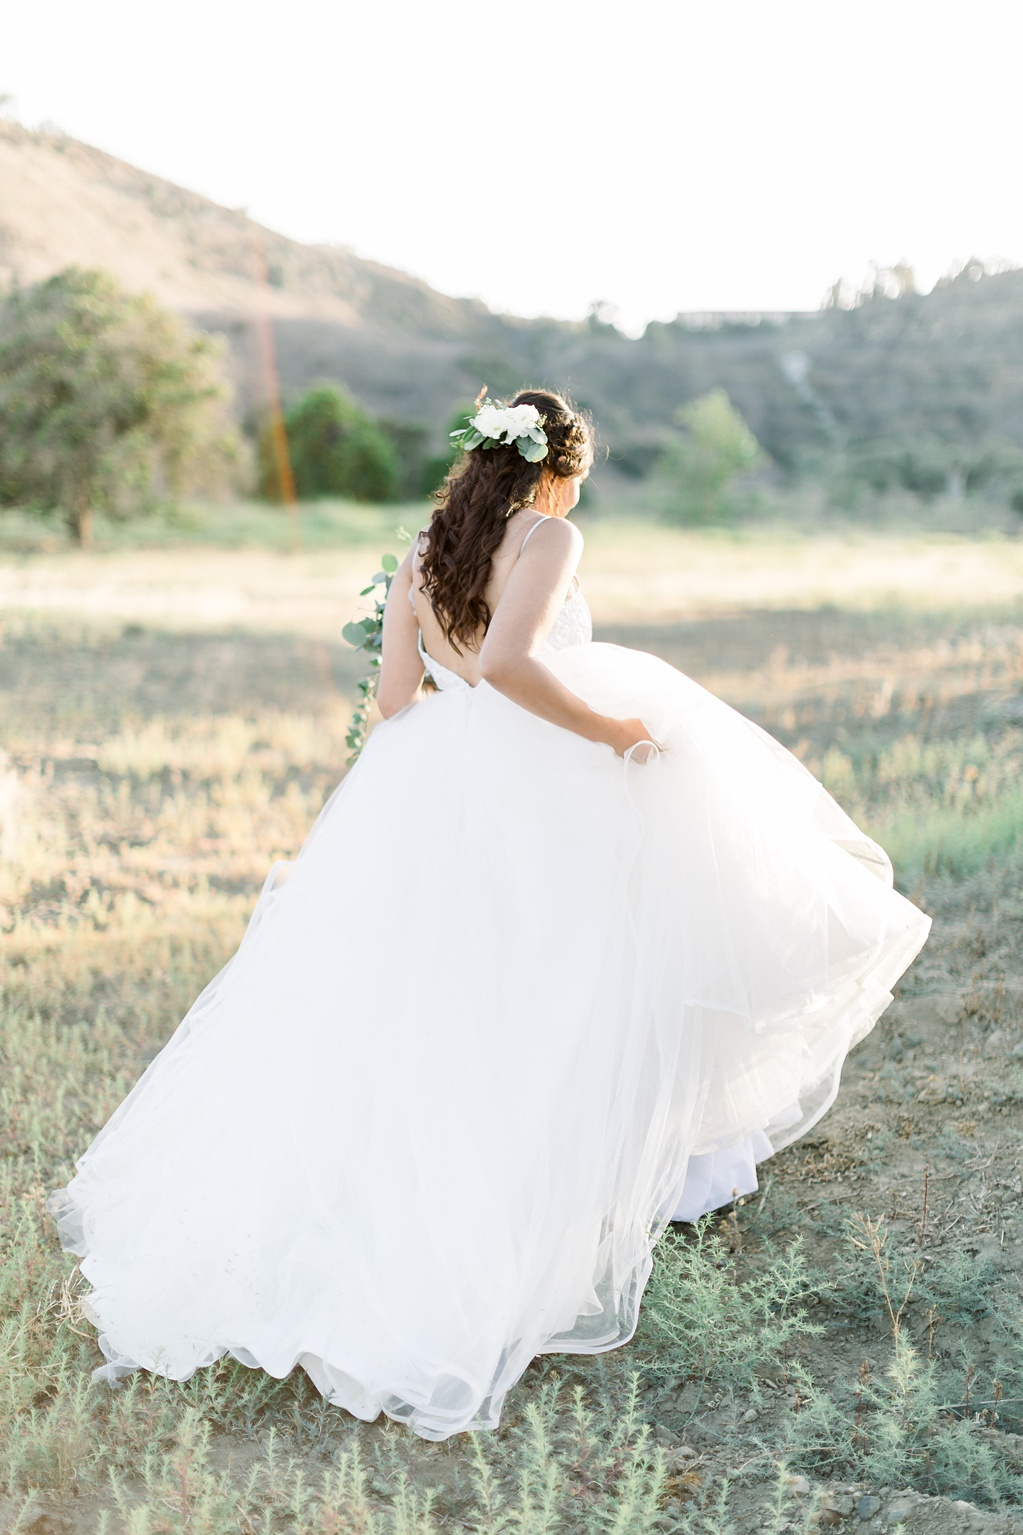 An Organic Floral Inspired Summer Wedding in the open fields of Hamilton Oaks, San Juan Capistrano by Wedding Photographer Madison Ellis (61)